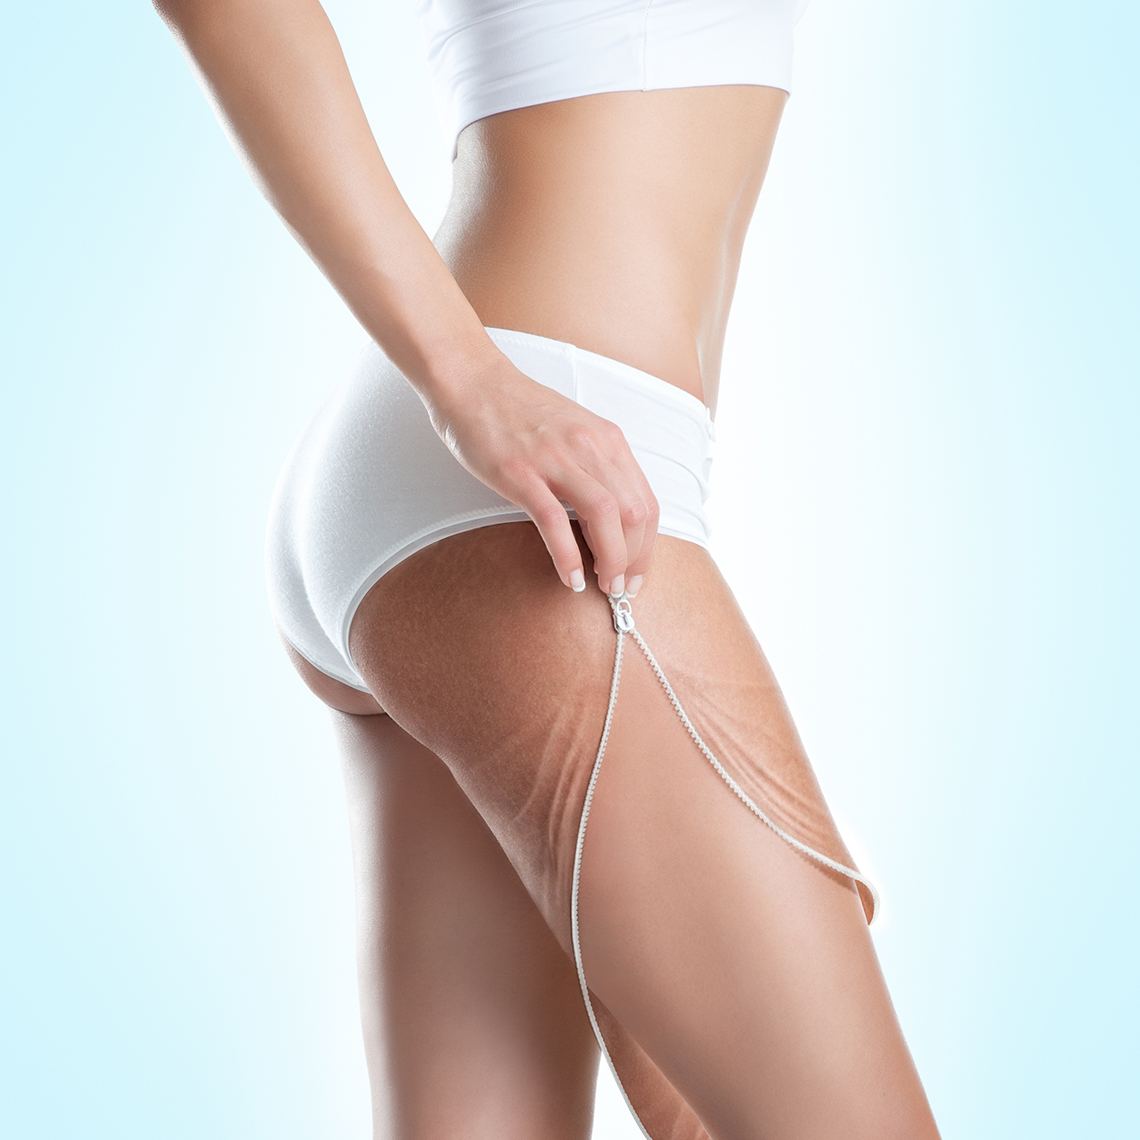 7 Daily Routines to get rid of cellulite on your thighs